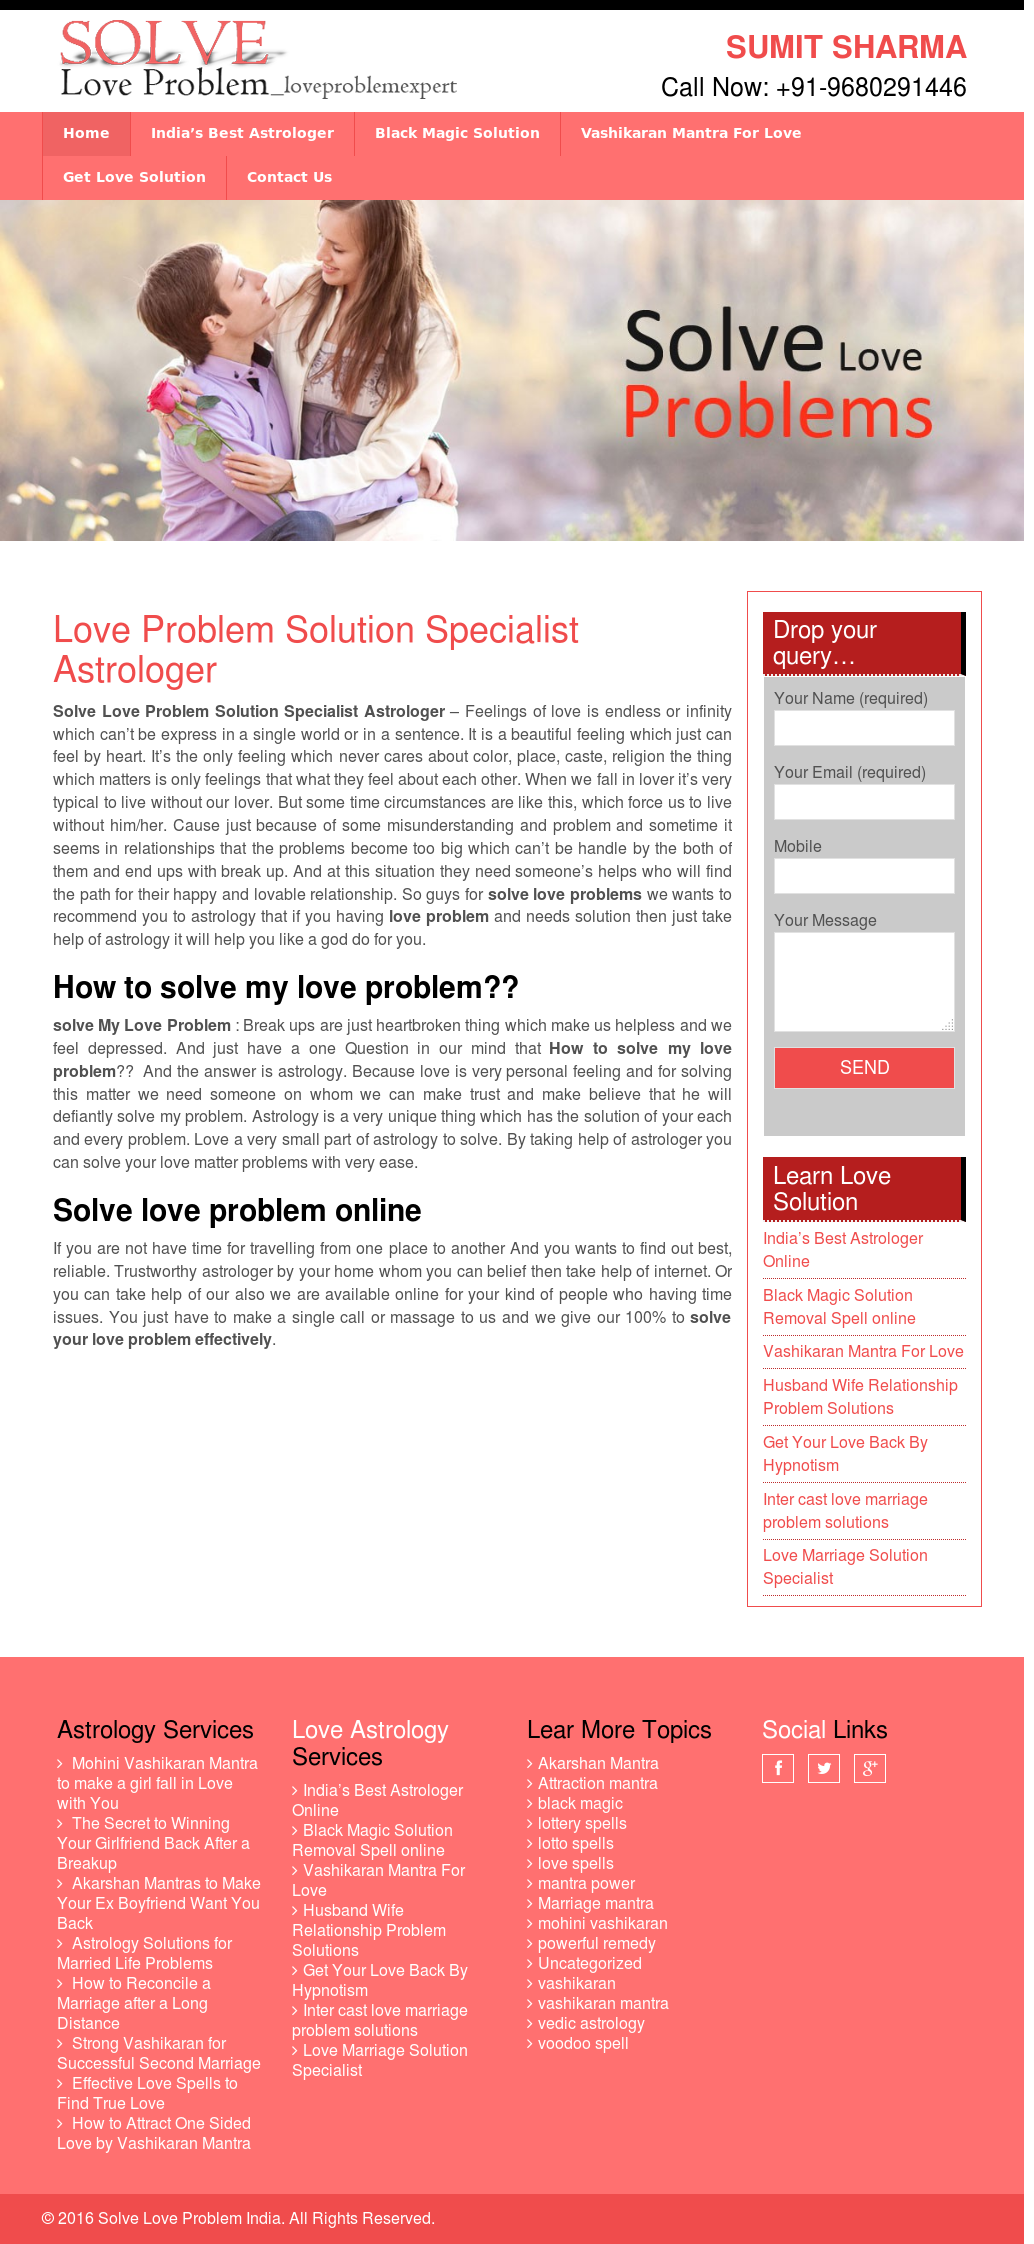 Solve Love Problem Competitors, Revenue and Employees